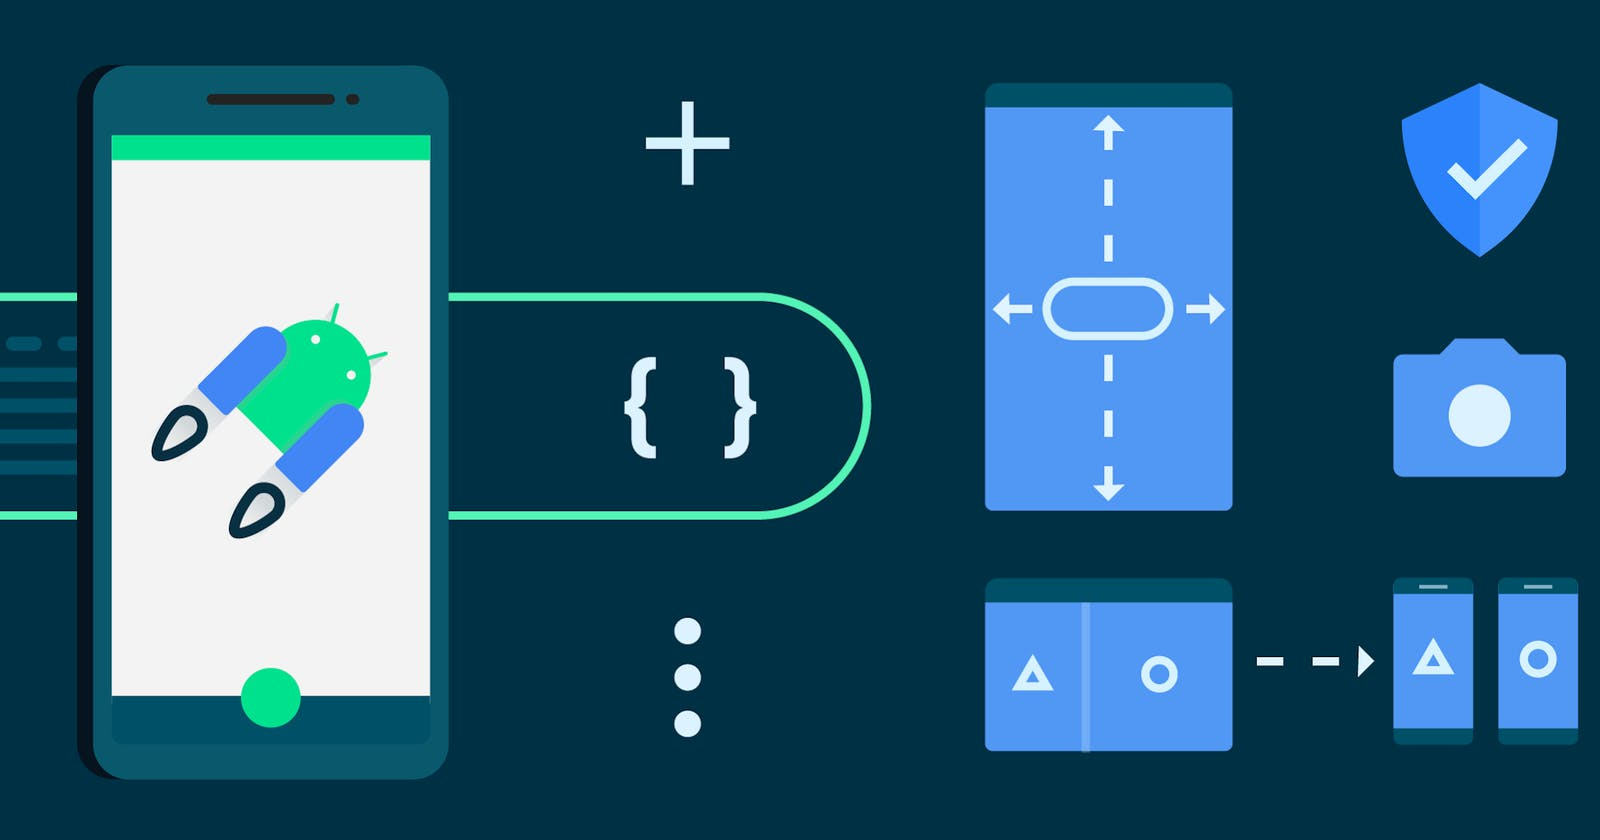 Android Dev Tools - Become a Master with these Tools, Collaborate Better